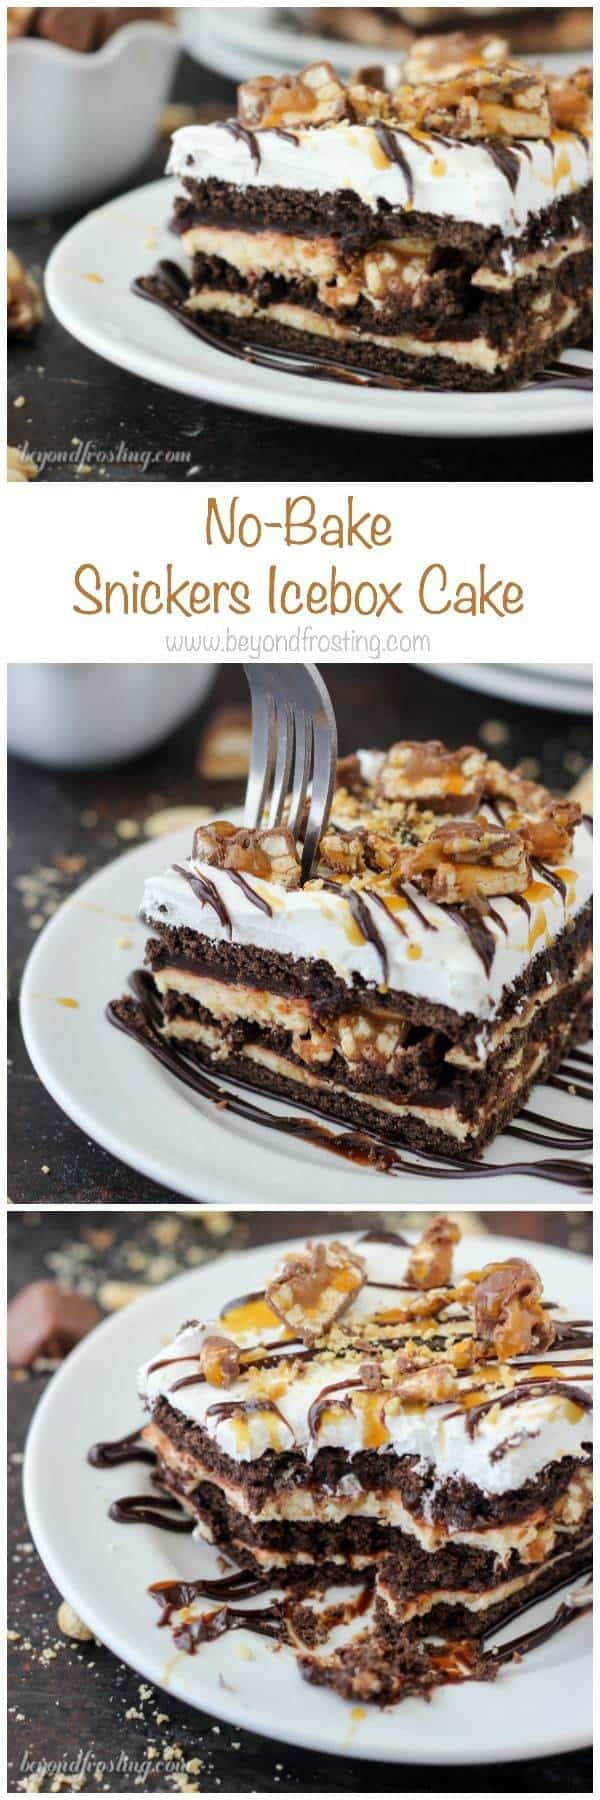 Snicker fans rejoice. This No-Bake Snickers Icebox Cake is the perfect way to cool down this summer. This dessert has layers of chocolate graham crackers, caramel cream cheese, chocolate pudding, Snickers bars and salty peanuts!